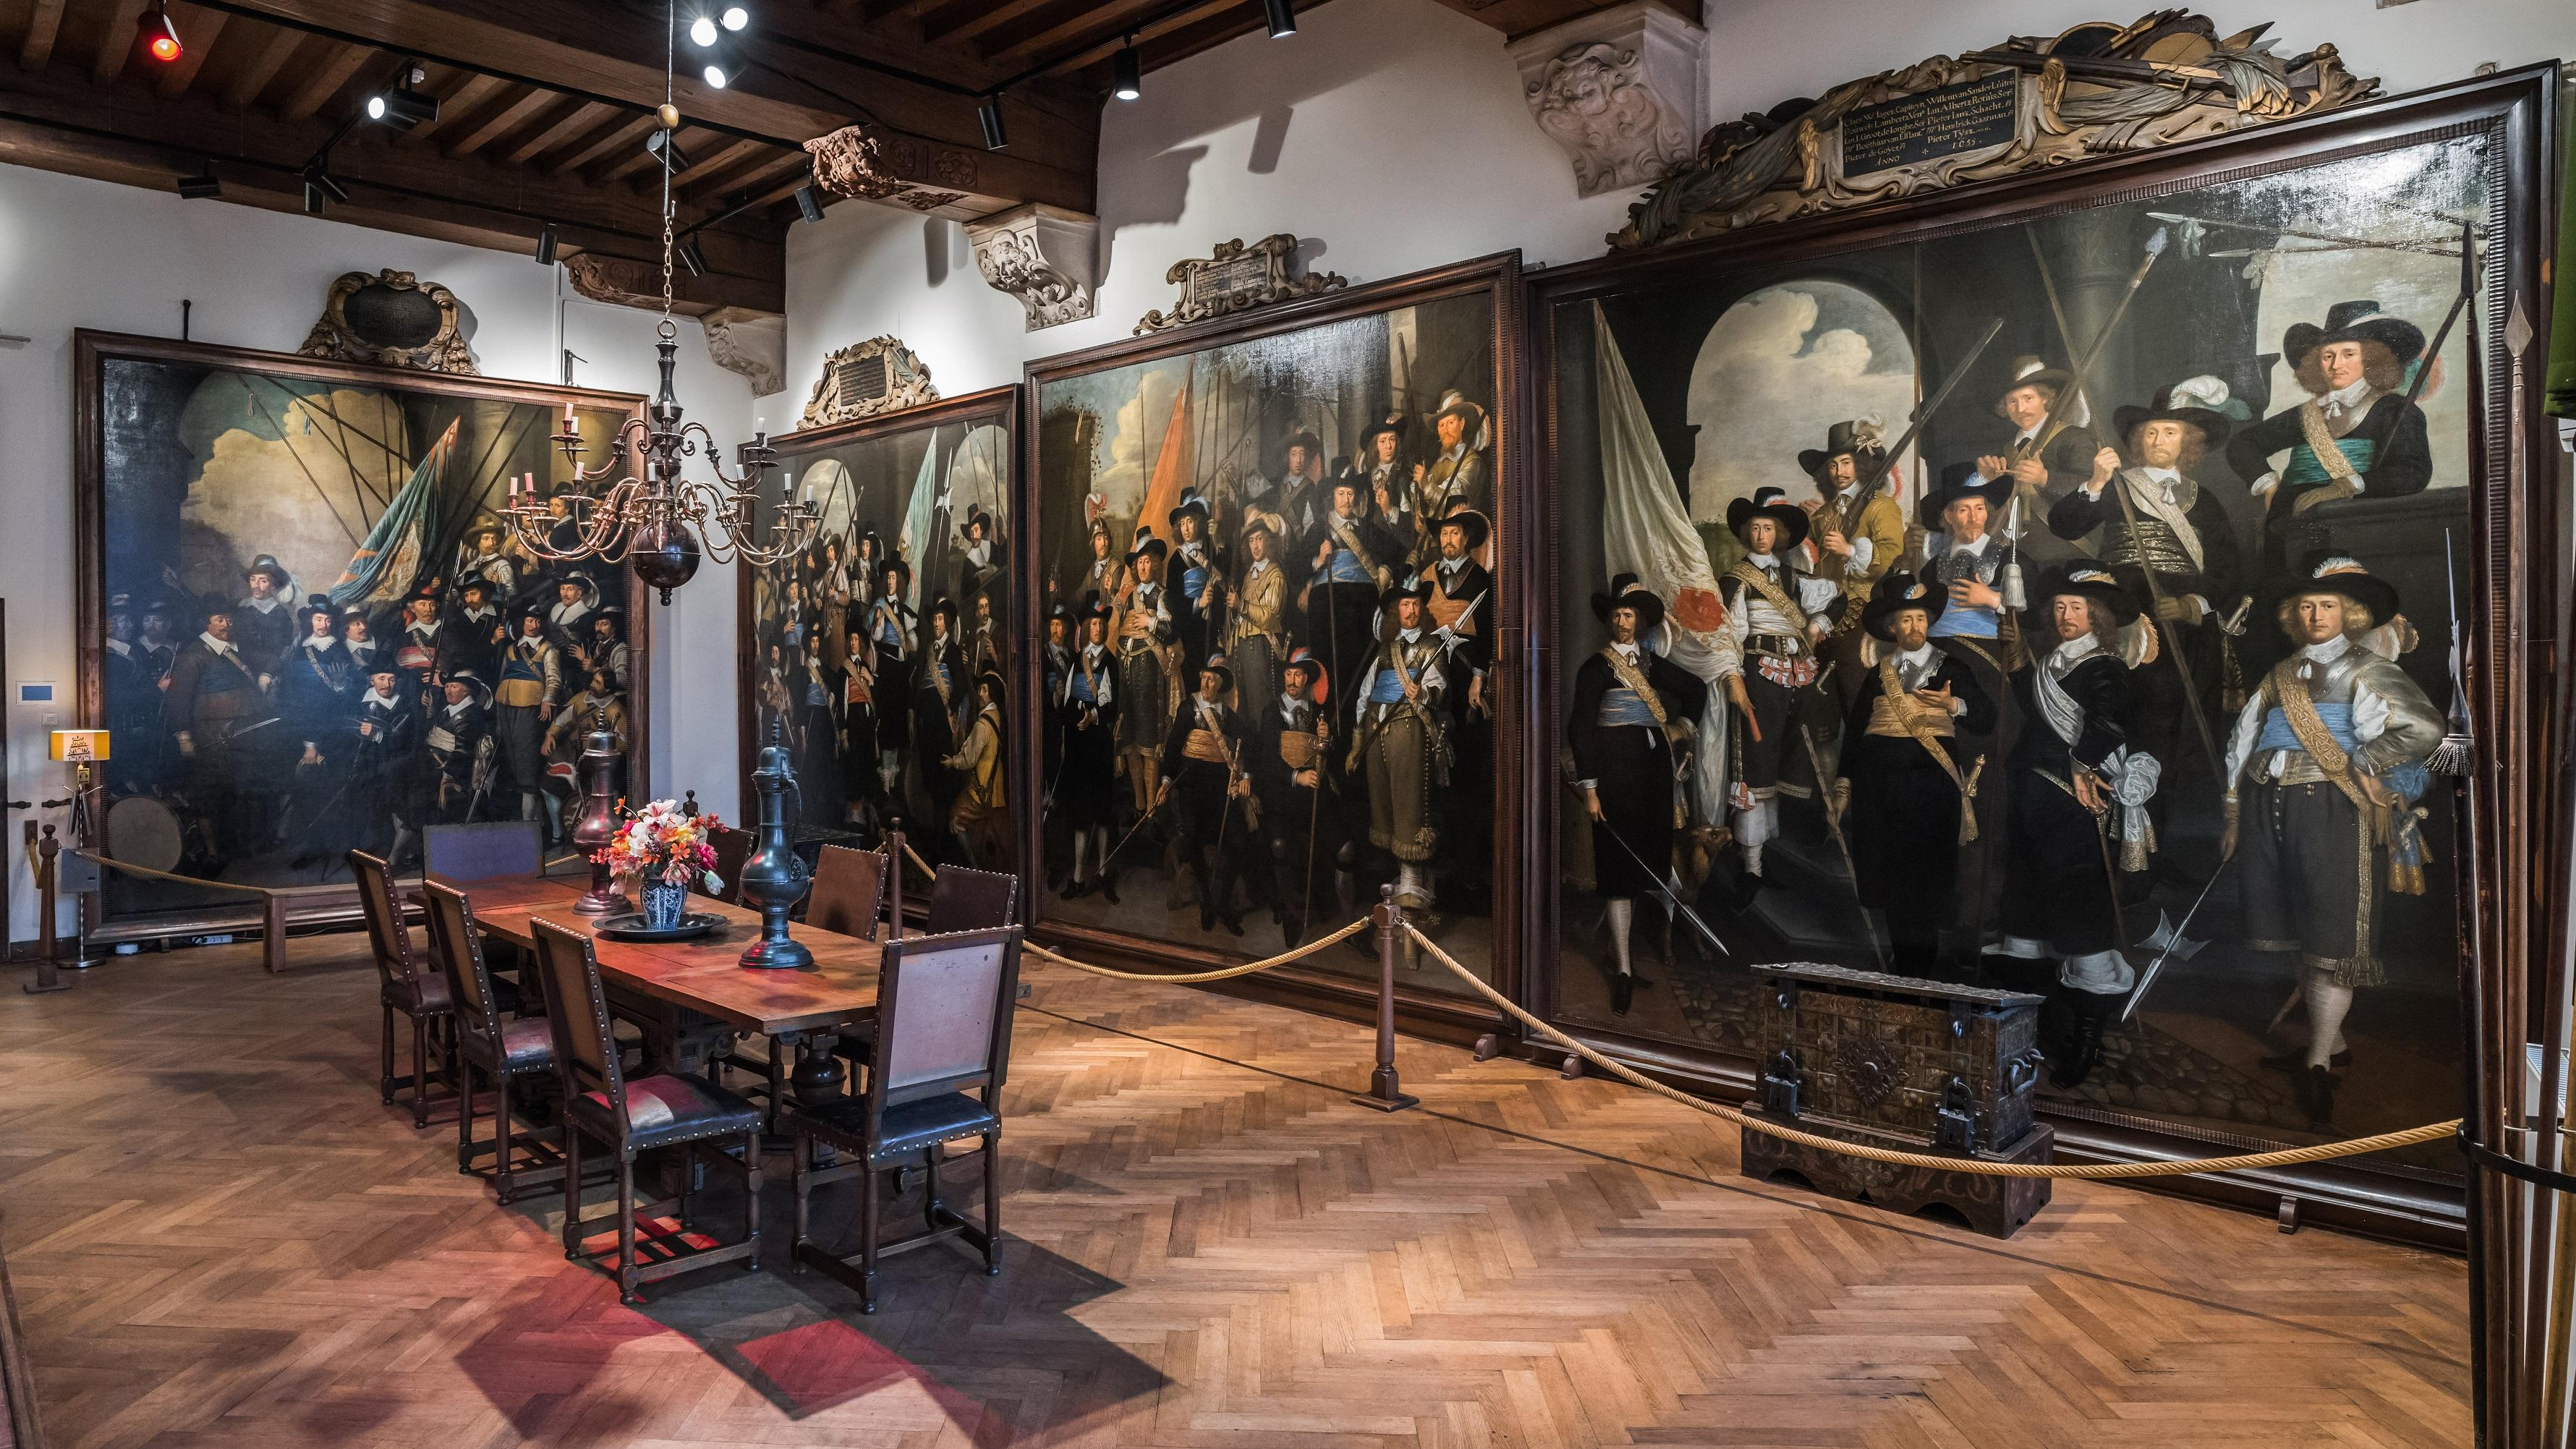 Blind date met historische figuren in het Westfries Museum in Hoorn